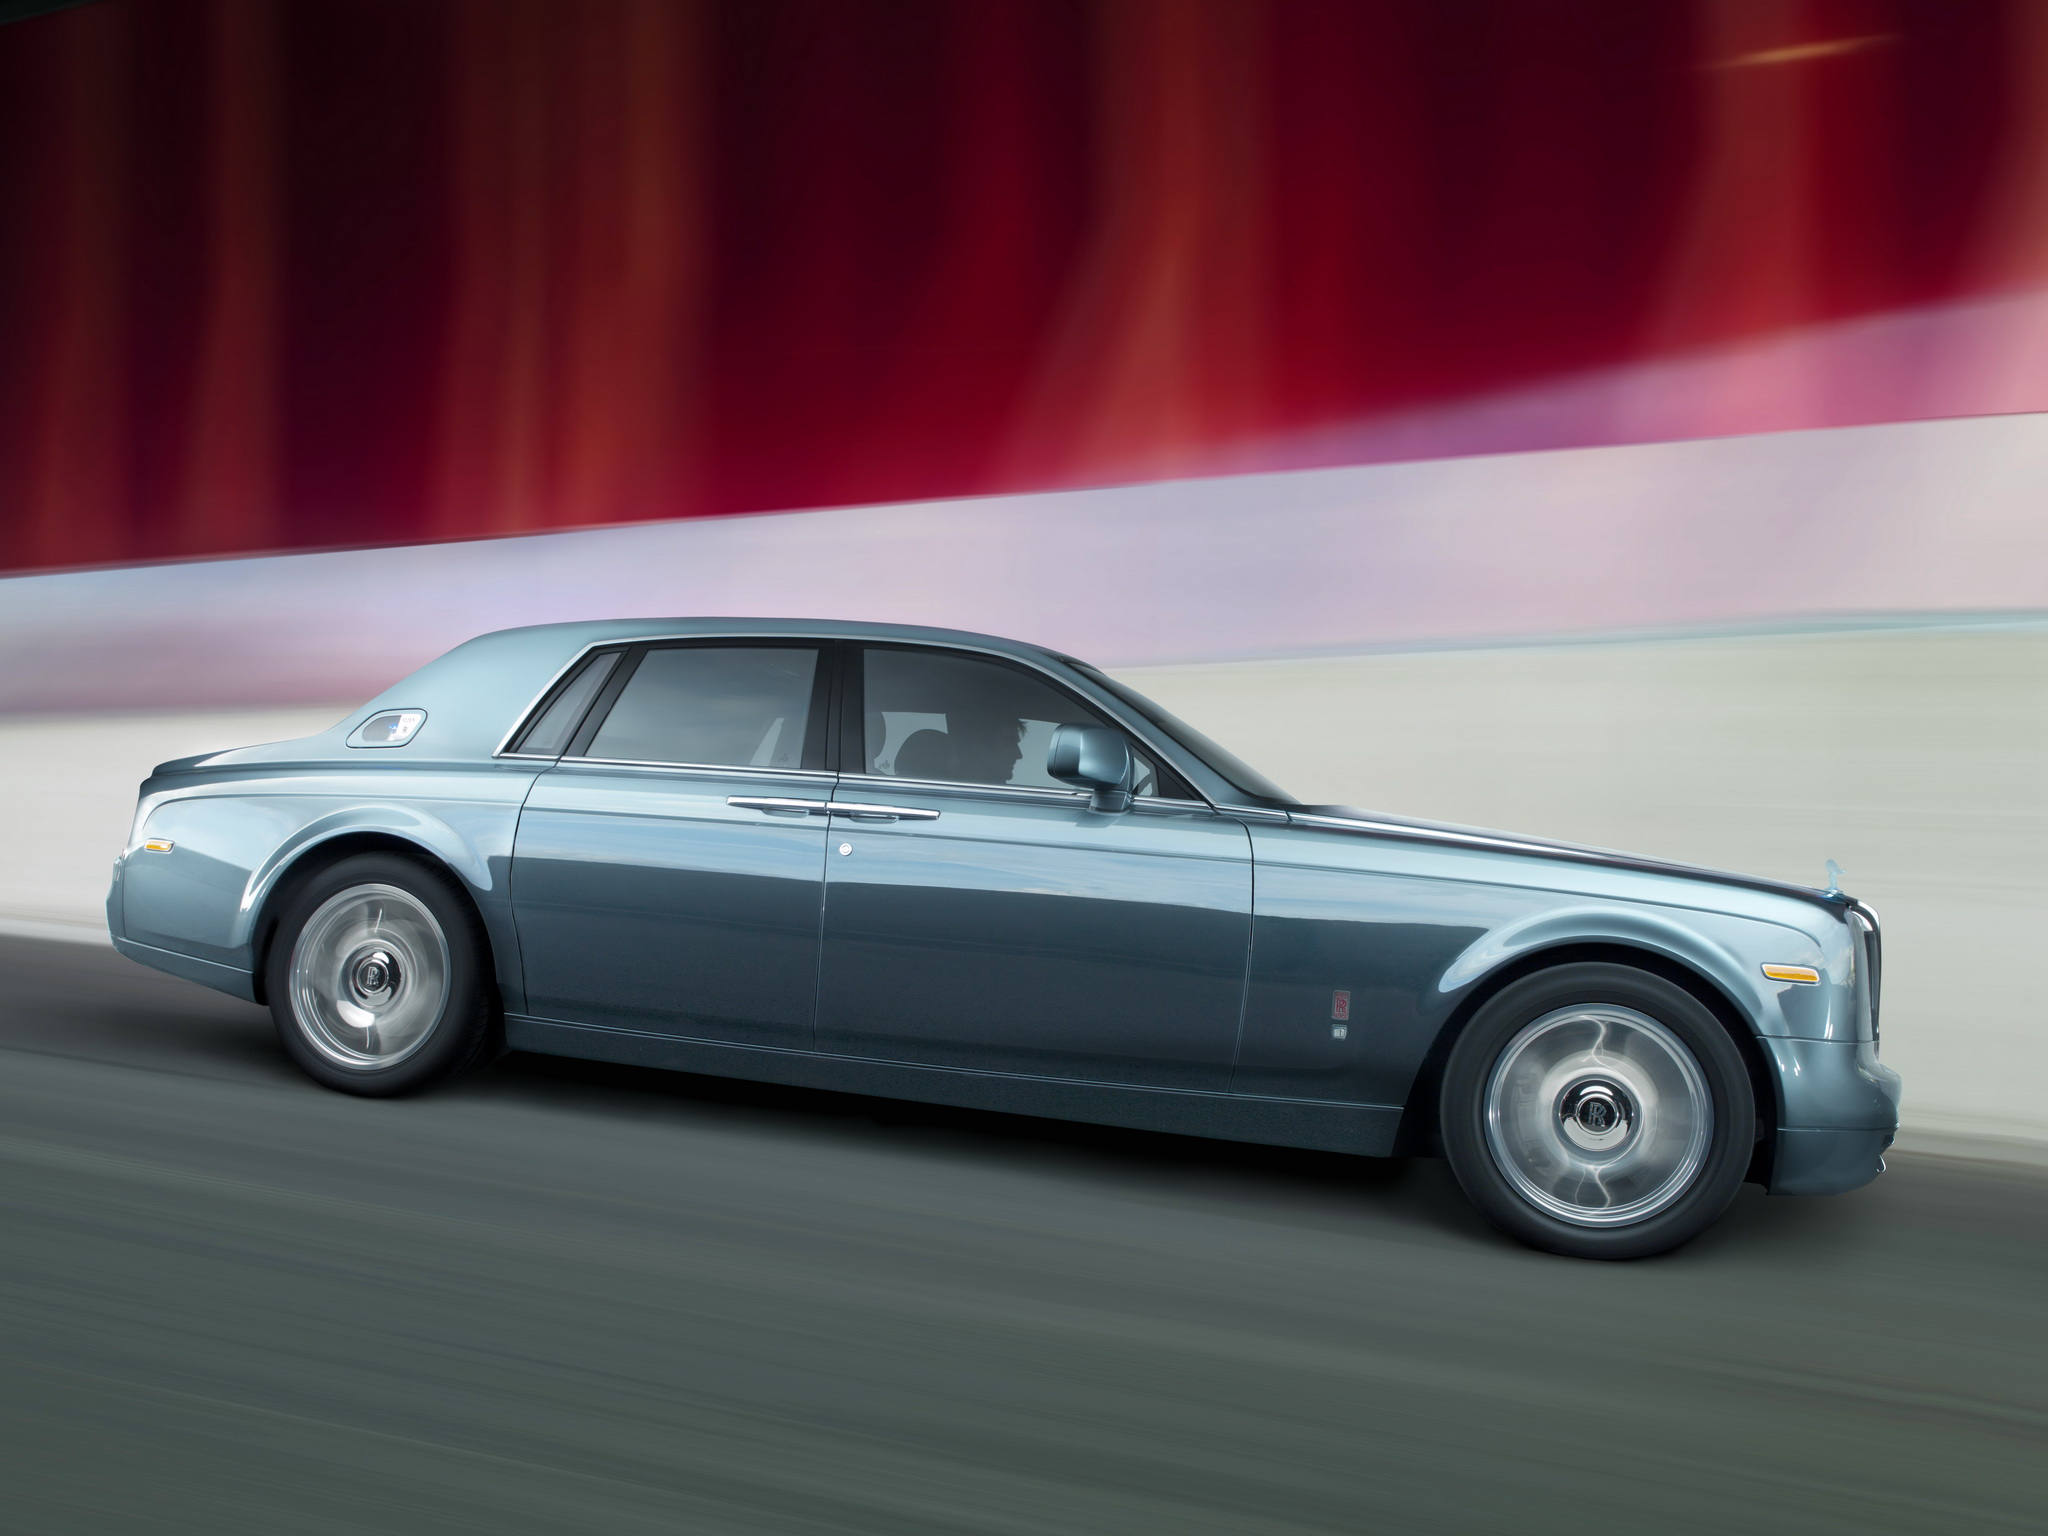 2019 Rolls Royce 102EX Electric Concept photo - 5